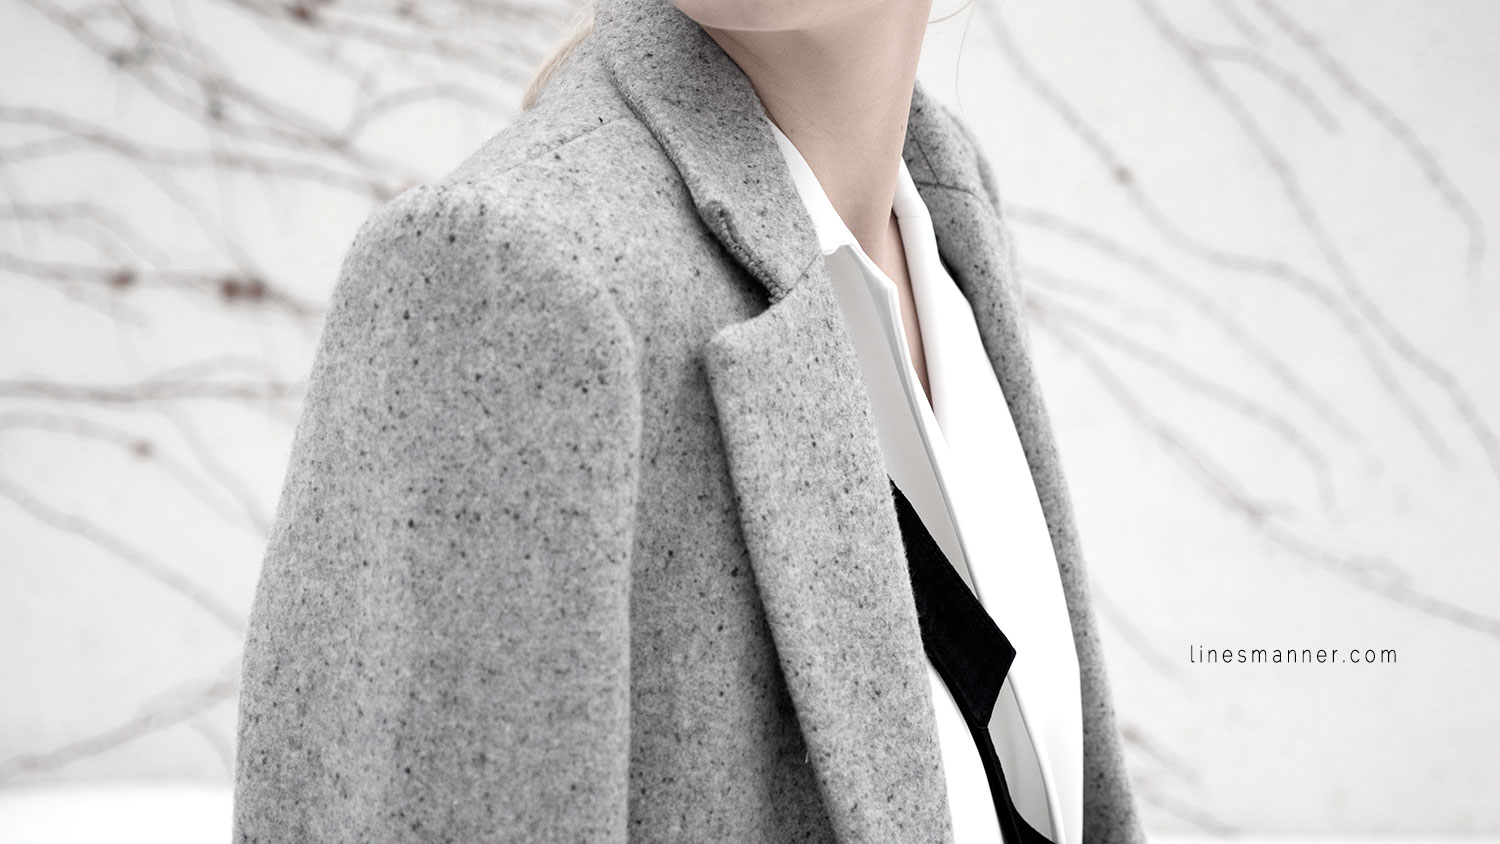 Lines-Manner-White_on_White-All_white-relaxed-shapes-tailored-blazer-pantsuit-clean-details-staples-essentials-sleek-LXE-box bag-light-fresh-slouchy-11